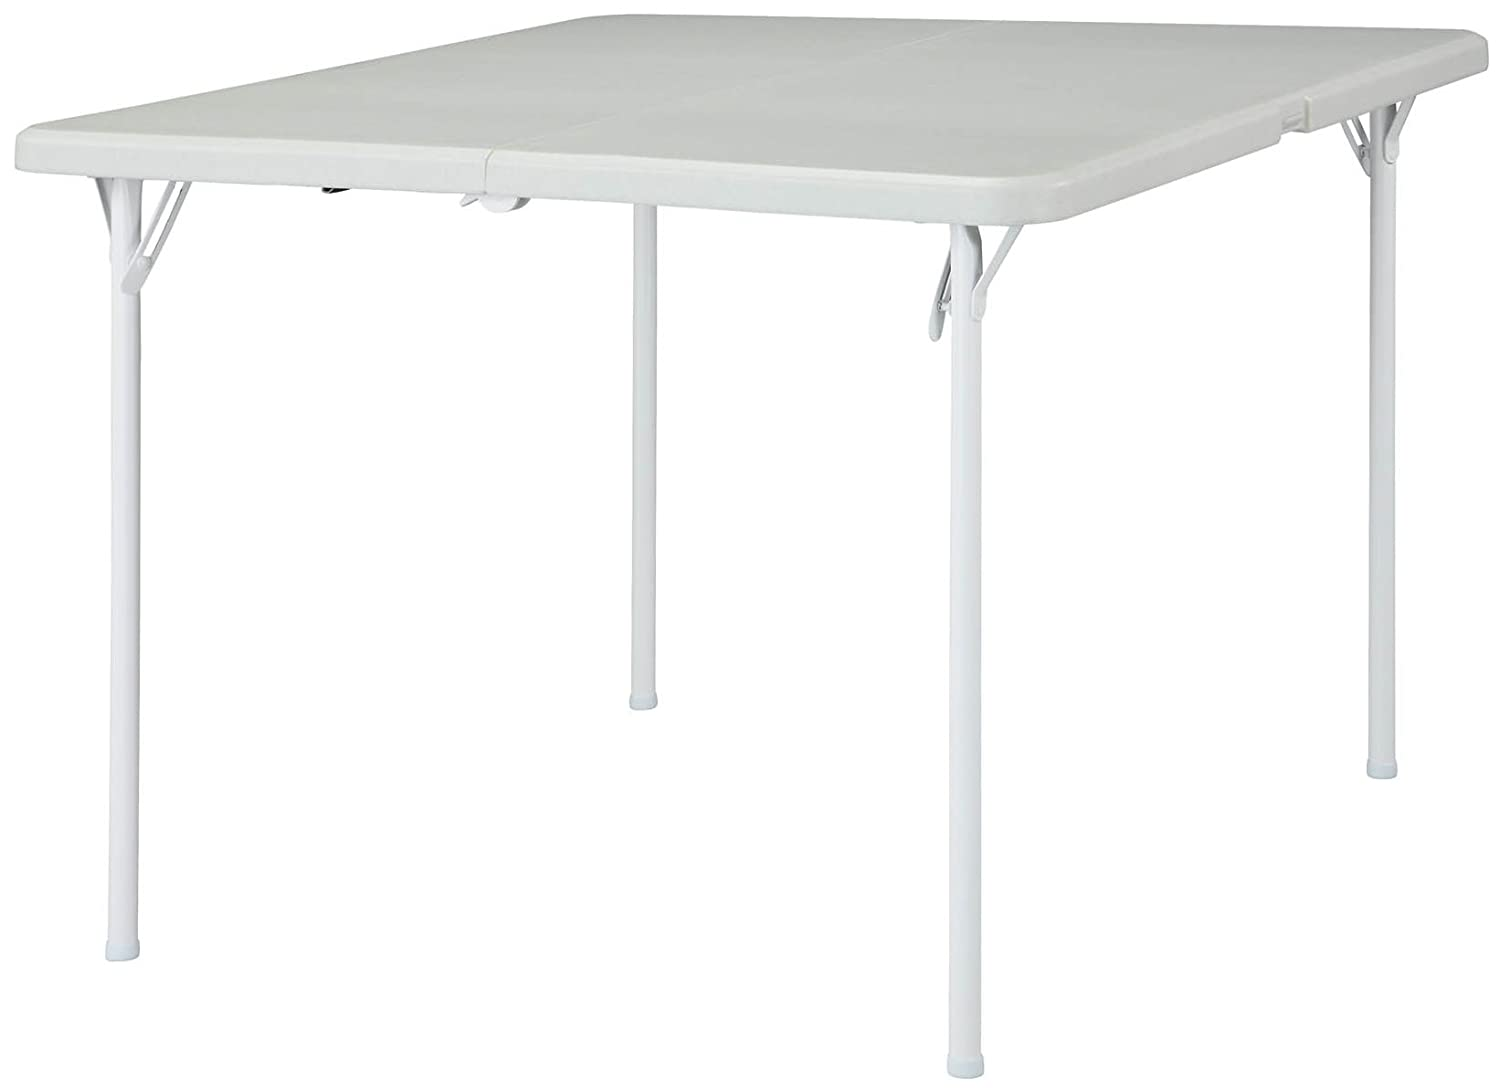 new storm square centre folding table silver 90cm amazoncouk sports u0026 outdoors